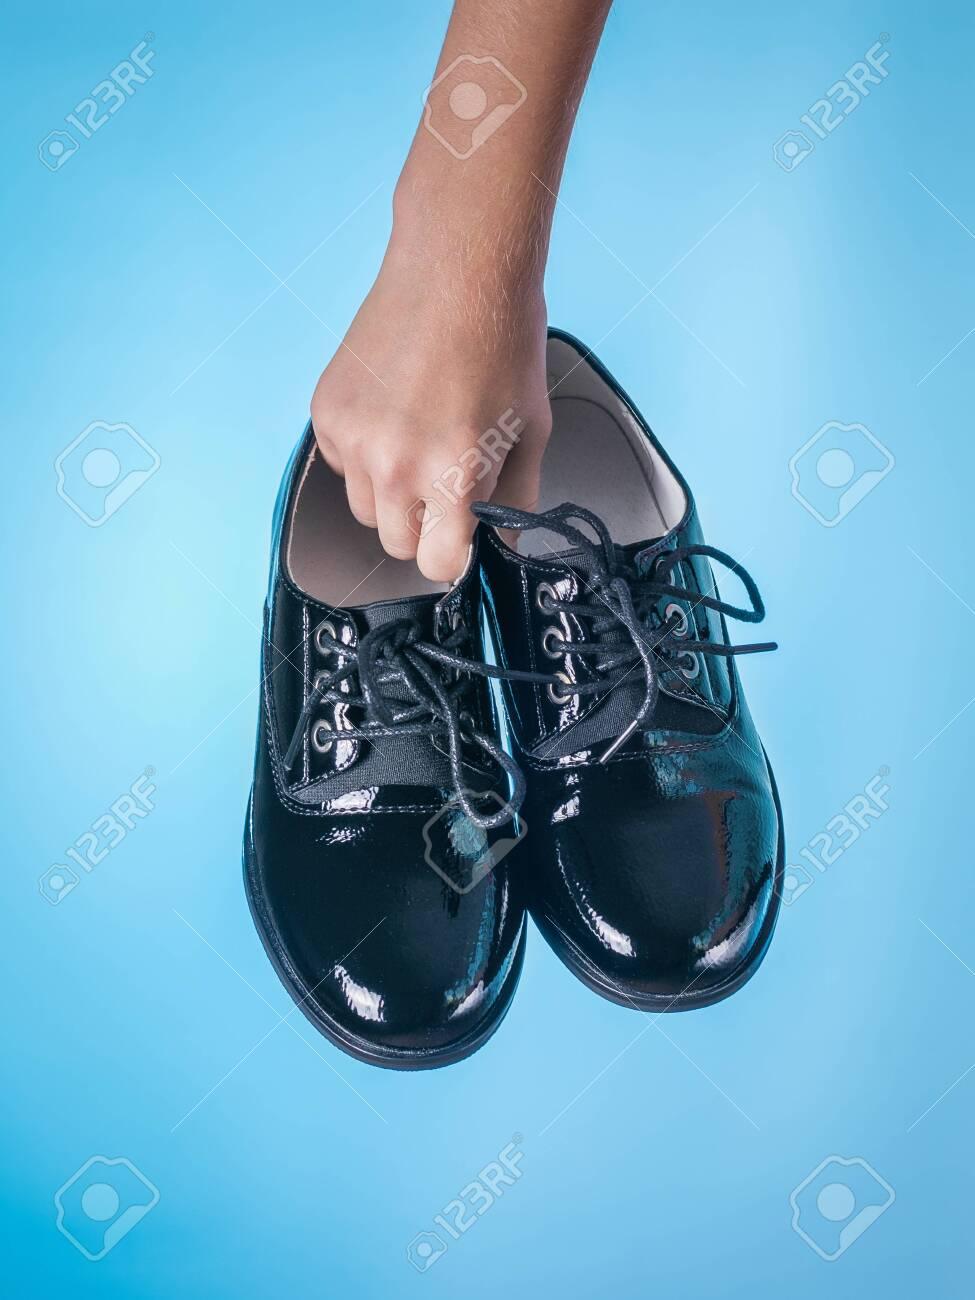 Fashionable Patent Leather Womens Shoes In Hands On A Blue 975x1300